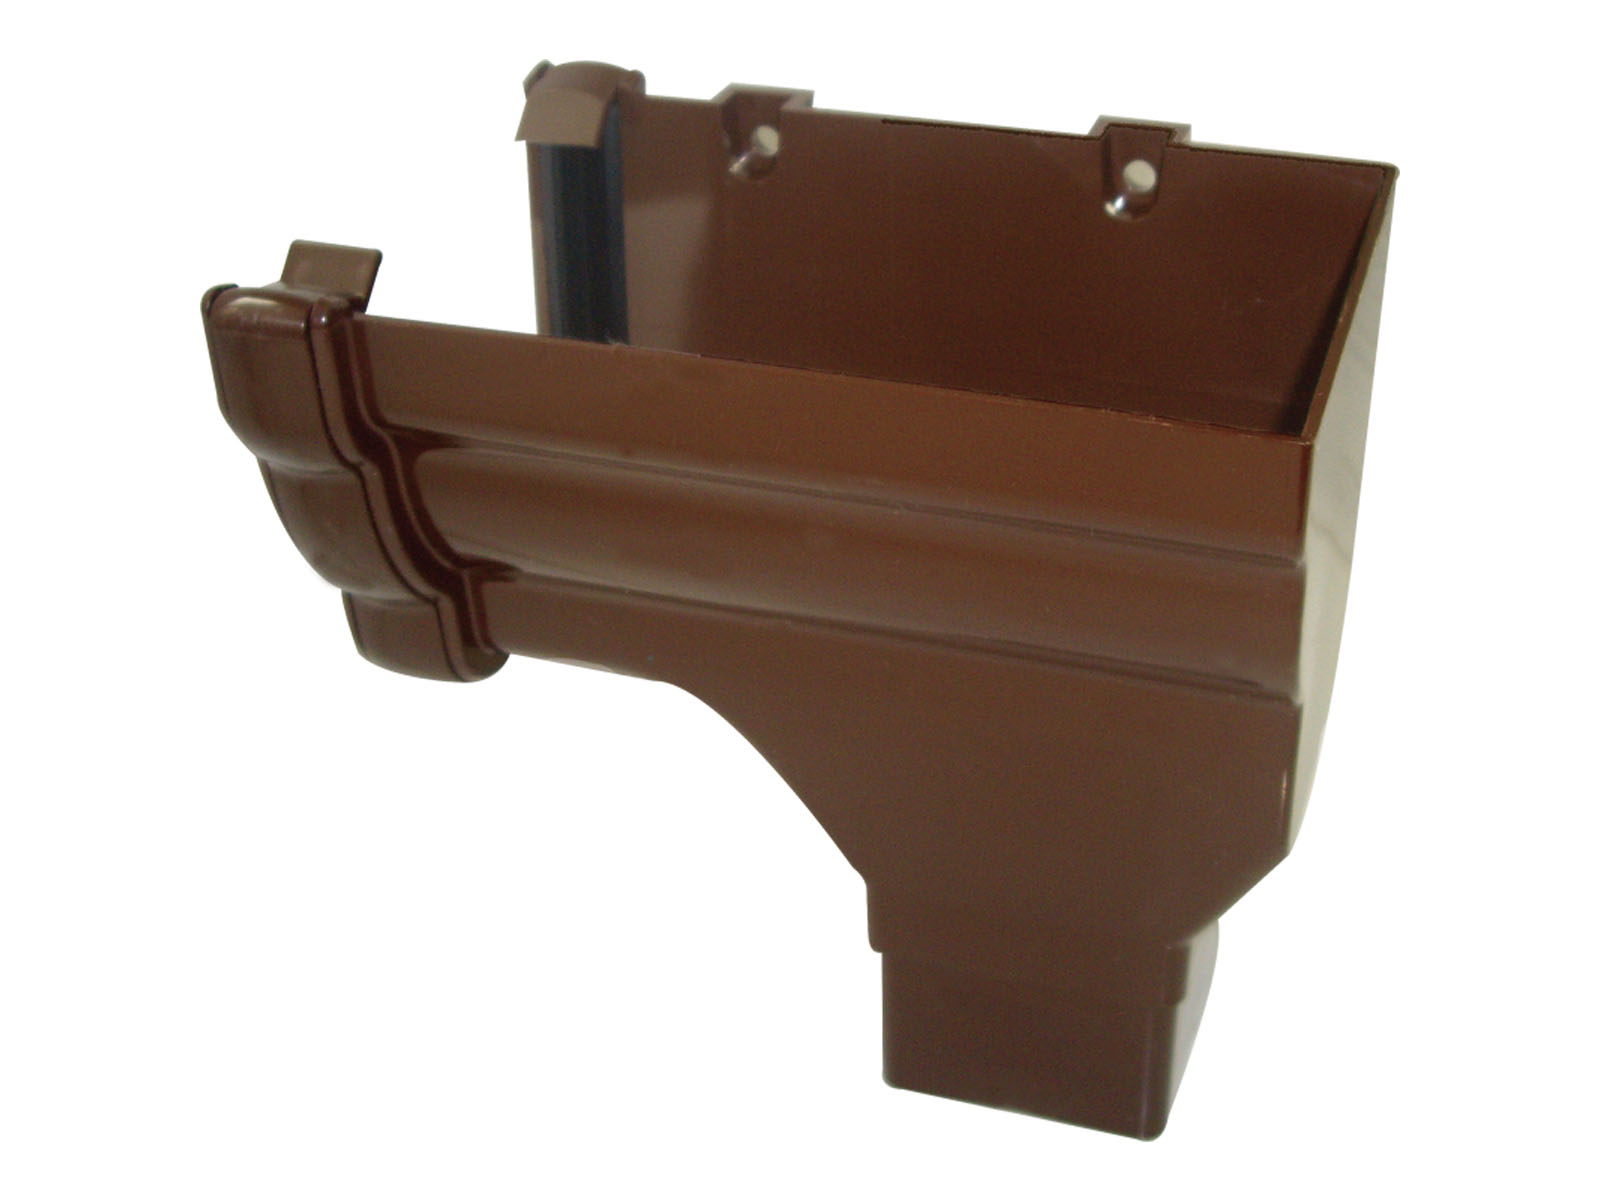 RON3BR RH S/END OUTLET NIAG GUTTER BROWN